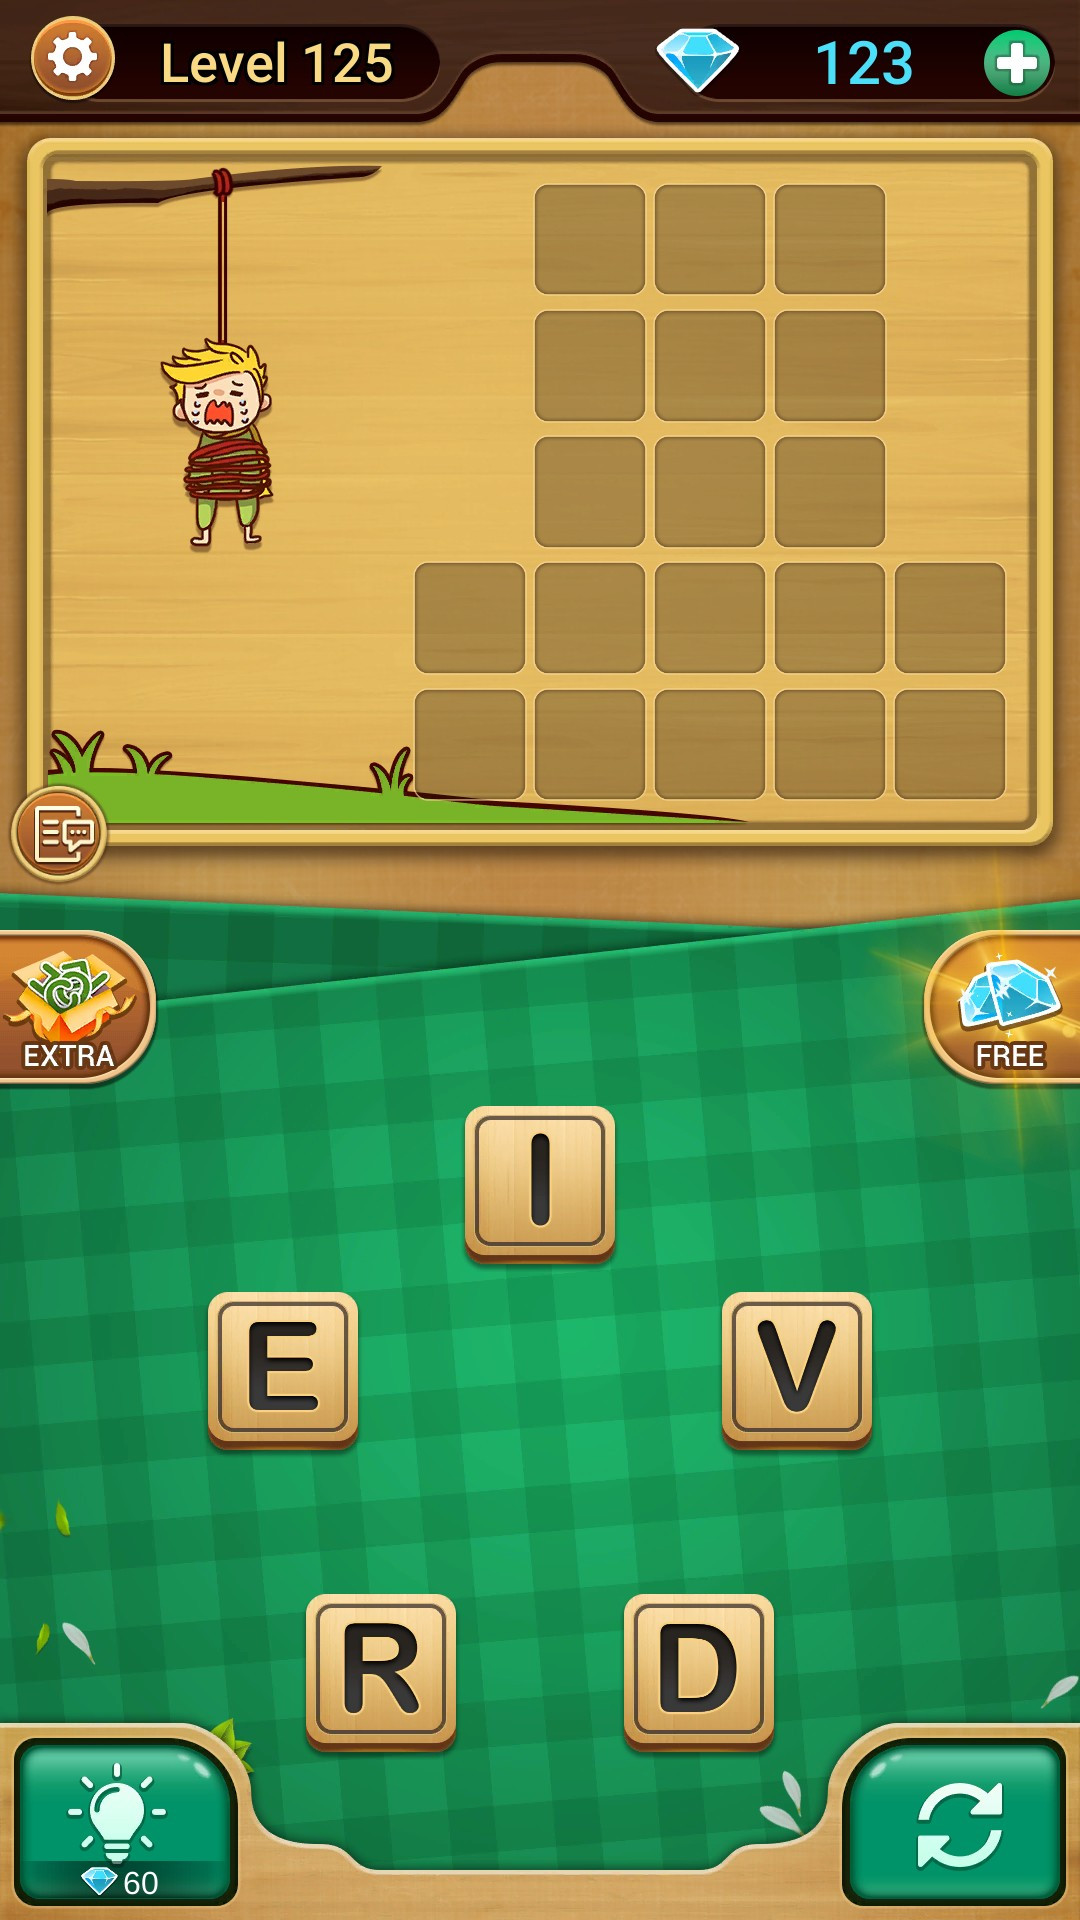 Answer Level 125 Chapter 25 in Word Link - zilliongamer your game guide